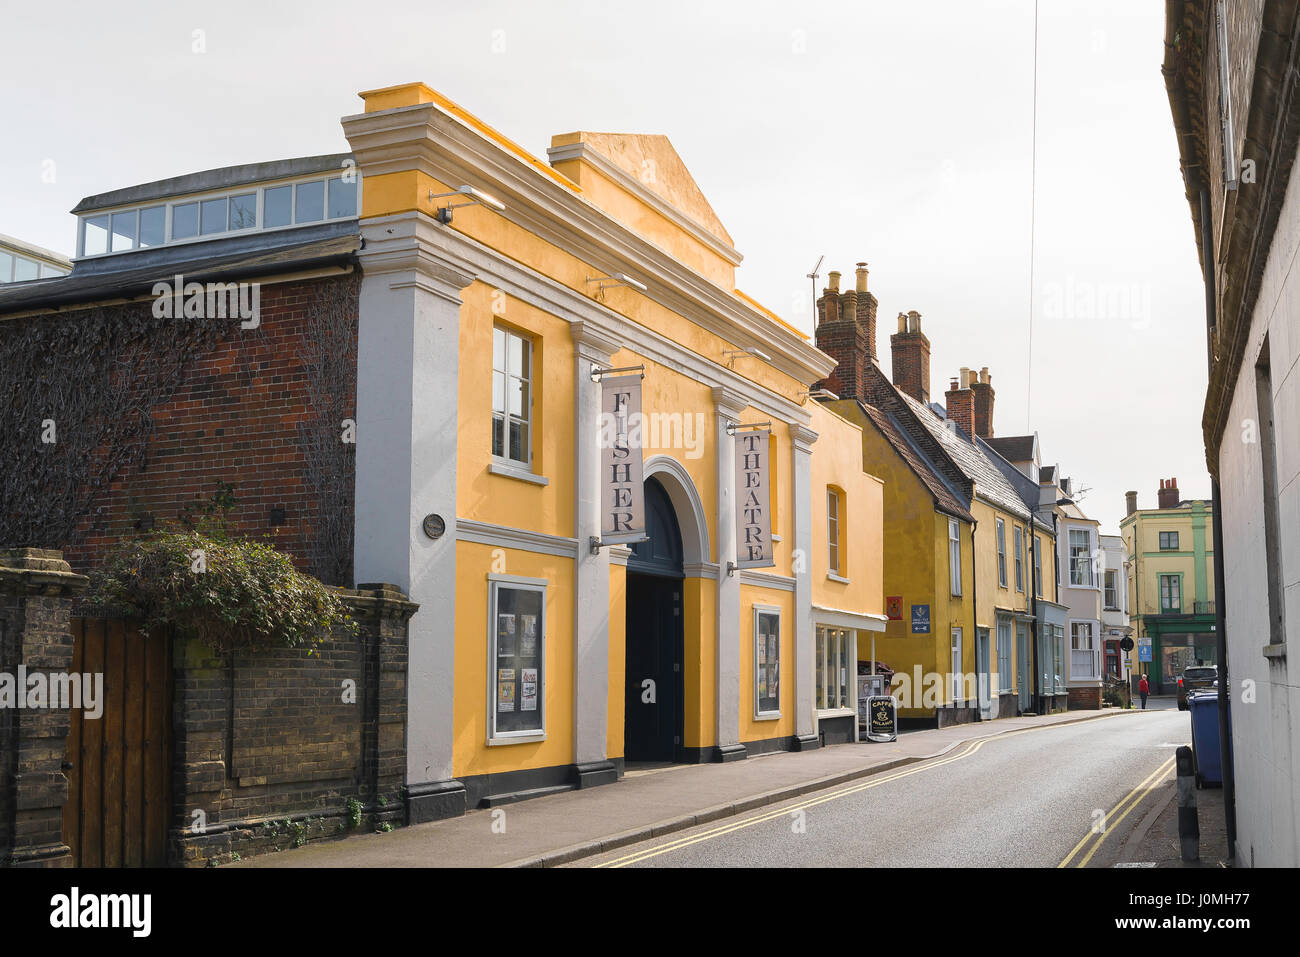 Bungay Suffolk UK, the Fisher Theatre in the Suffolk town of Bungay, England - Stock Image